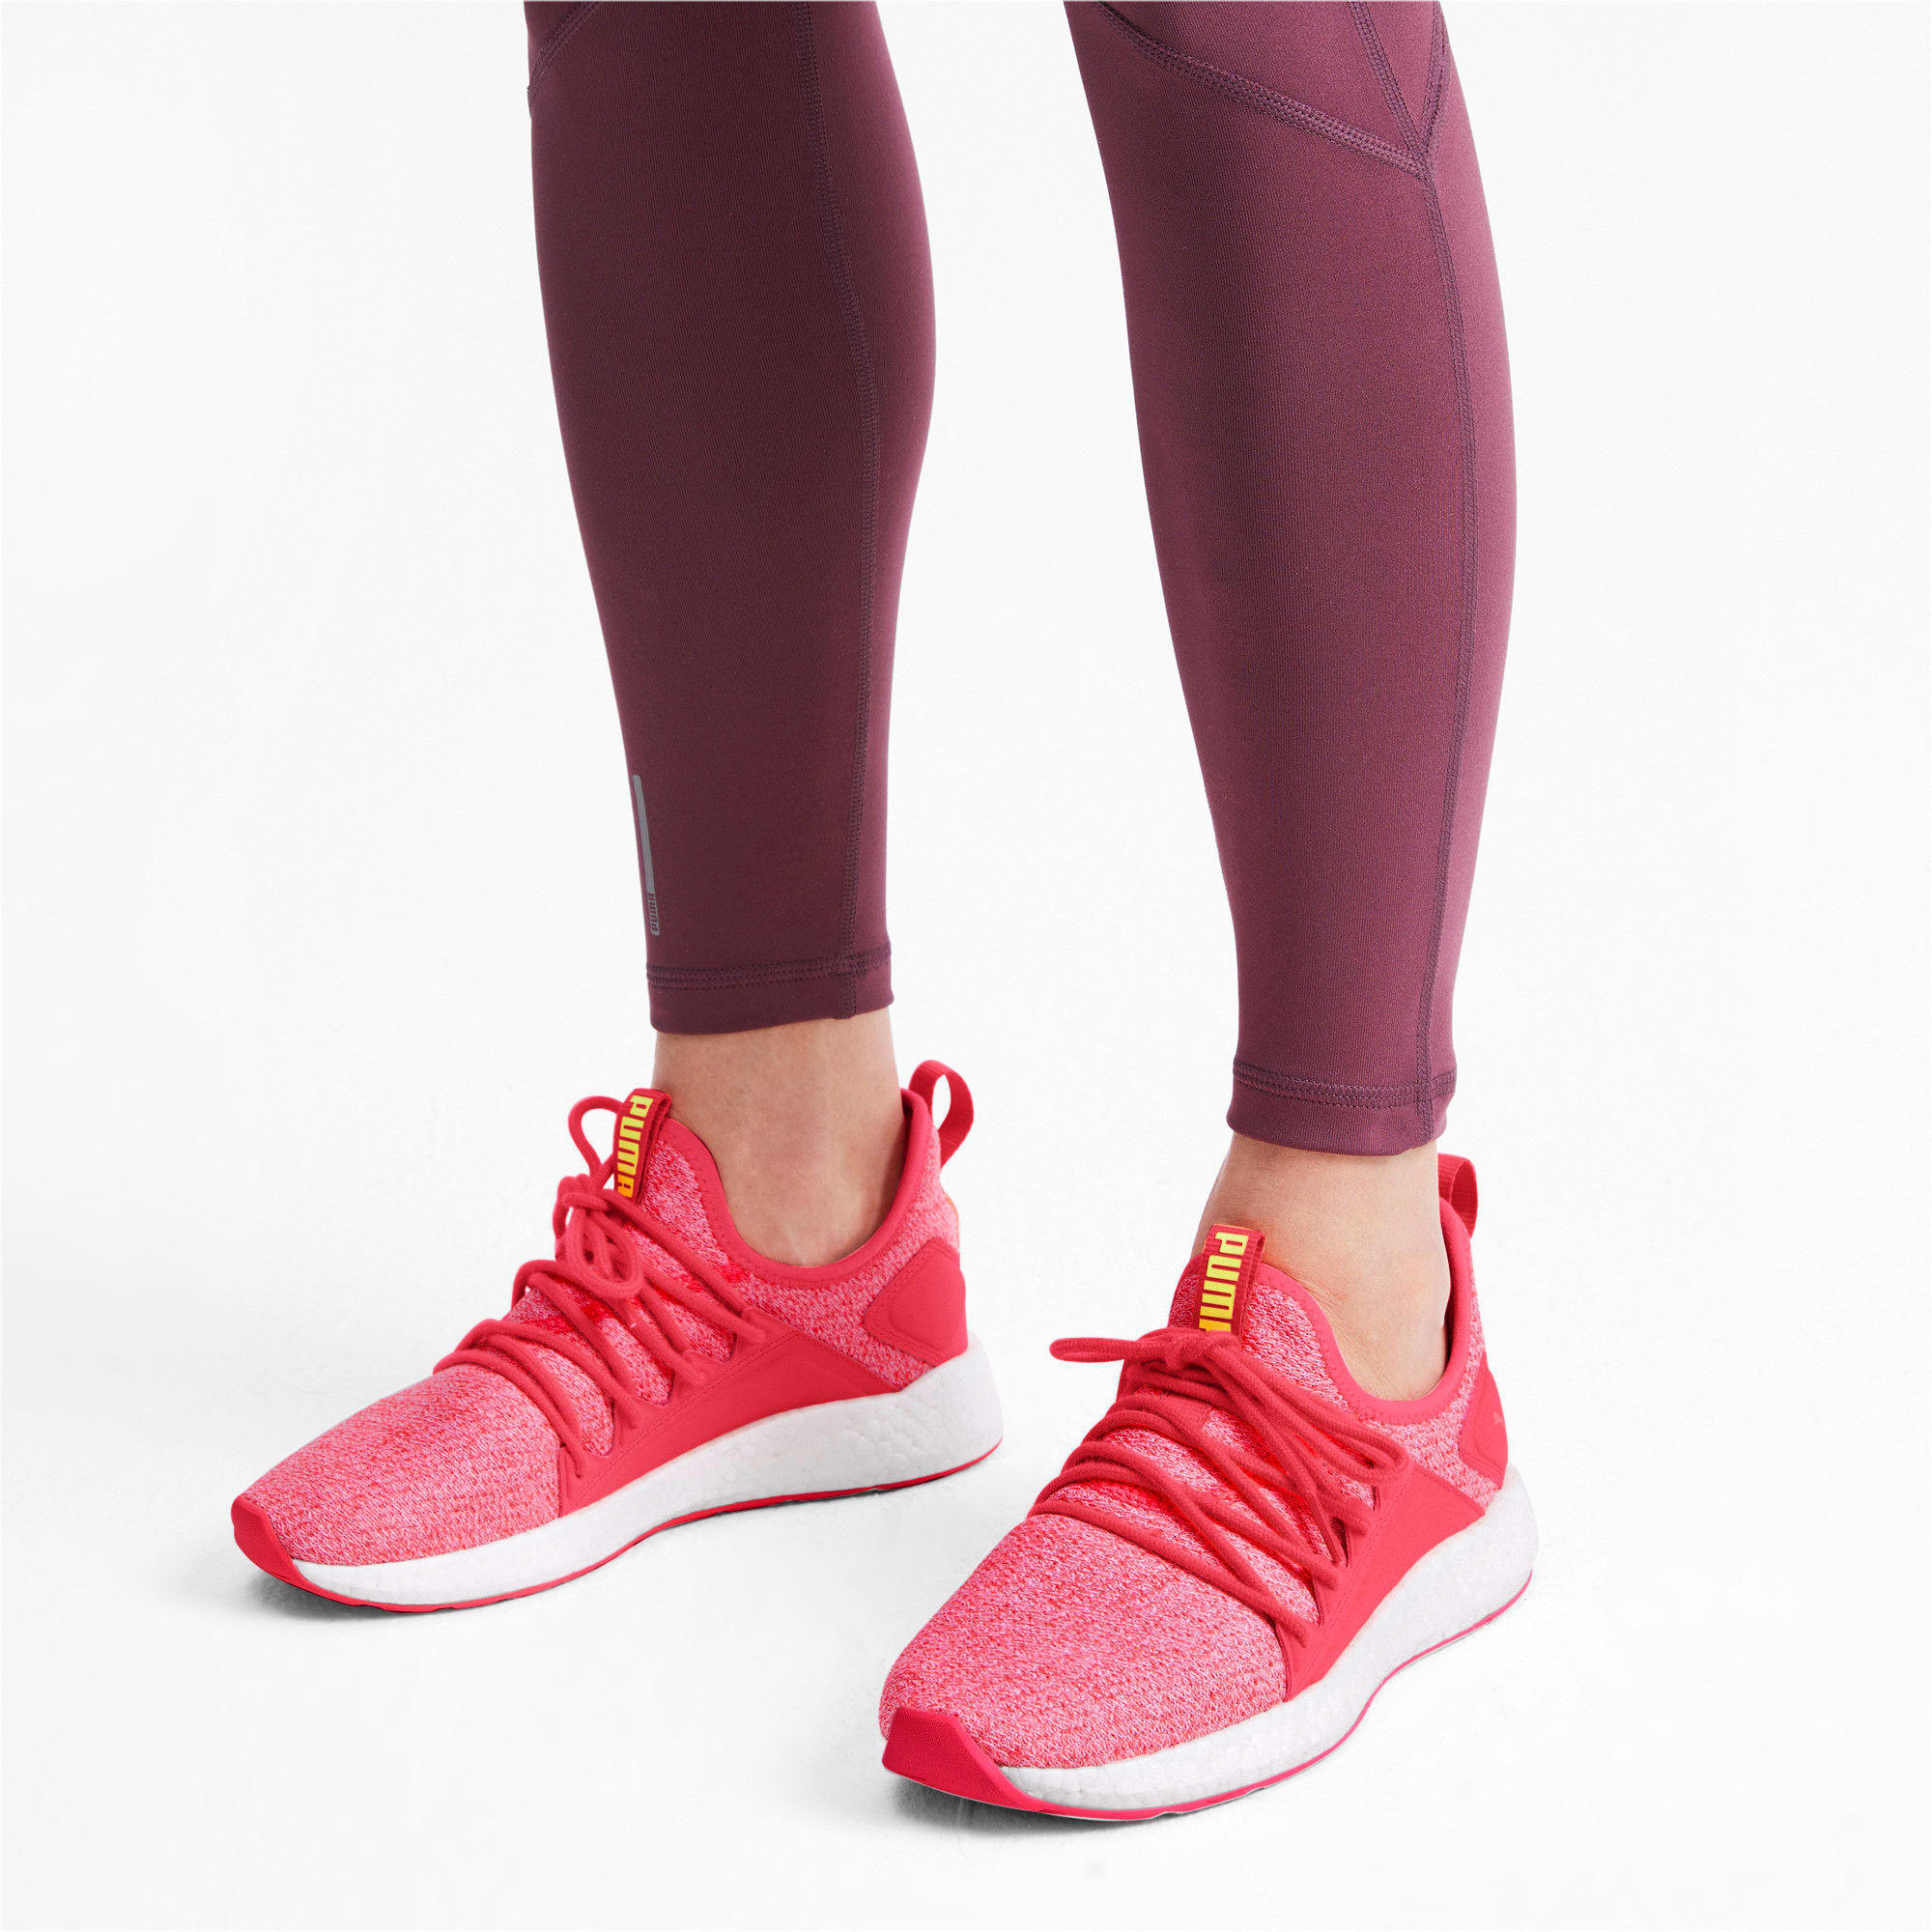 Thumbnail 3 of NRGY Neko Knit Women's Running Shoes, Pink Alert-Puma White, medium-IND